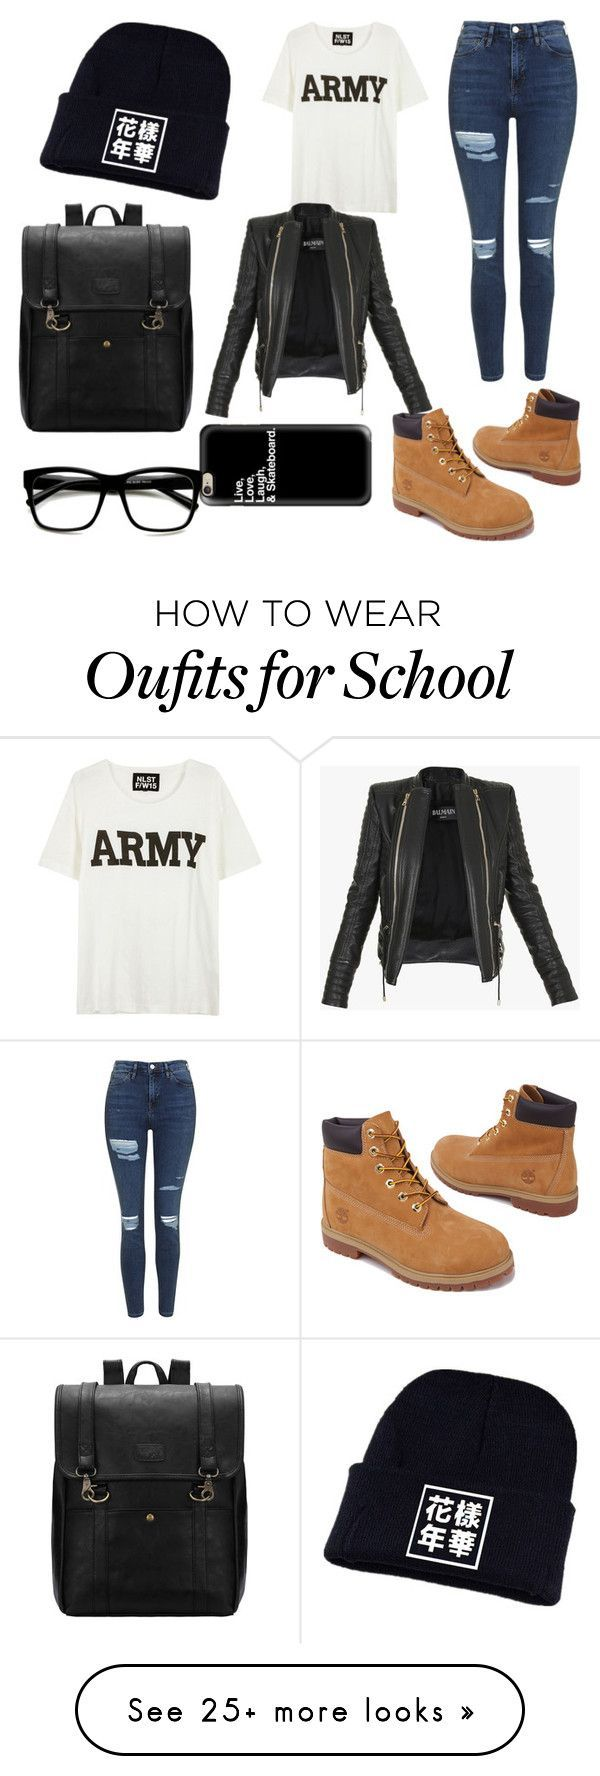 """School mood"" by kimie-hunie on Polyvore featuring Timberland, Topshop, NLST, Casetify, Retrò and Balmain"